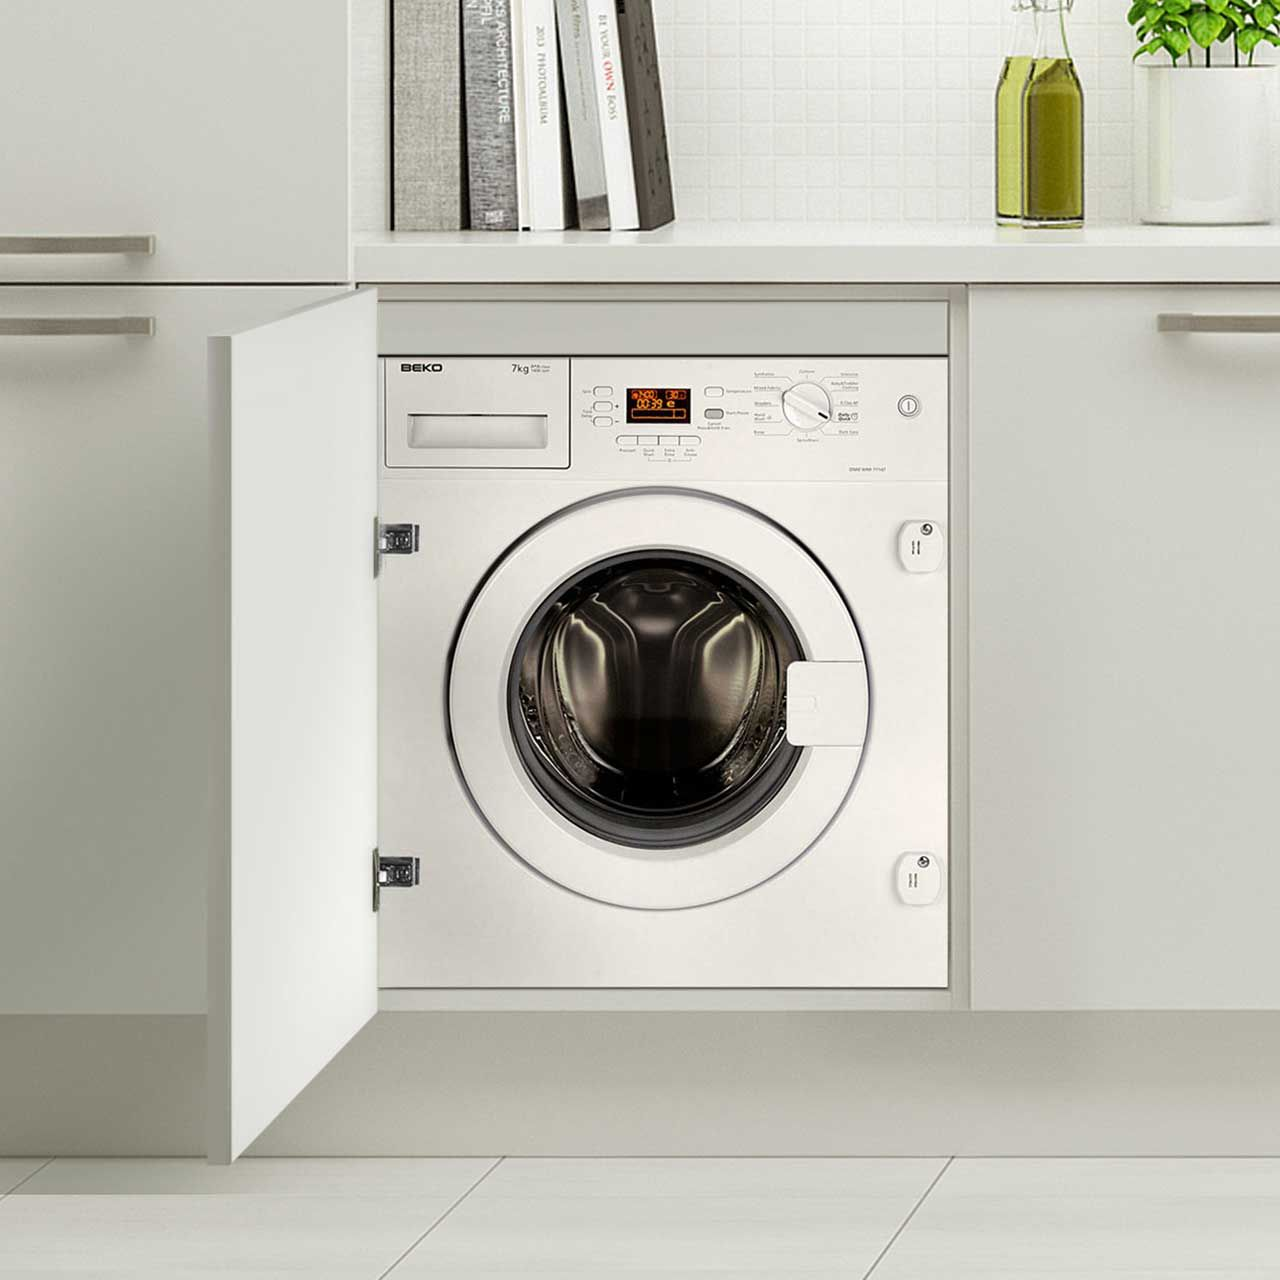 boots kitchen appliances   get advantage card points beko integrated 7kg washing machine   wmi71641   ao com   tom u0027s      rh   pinterest com